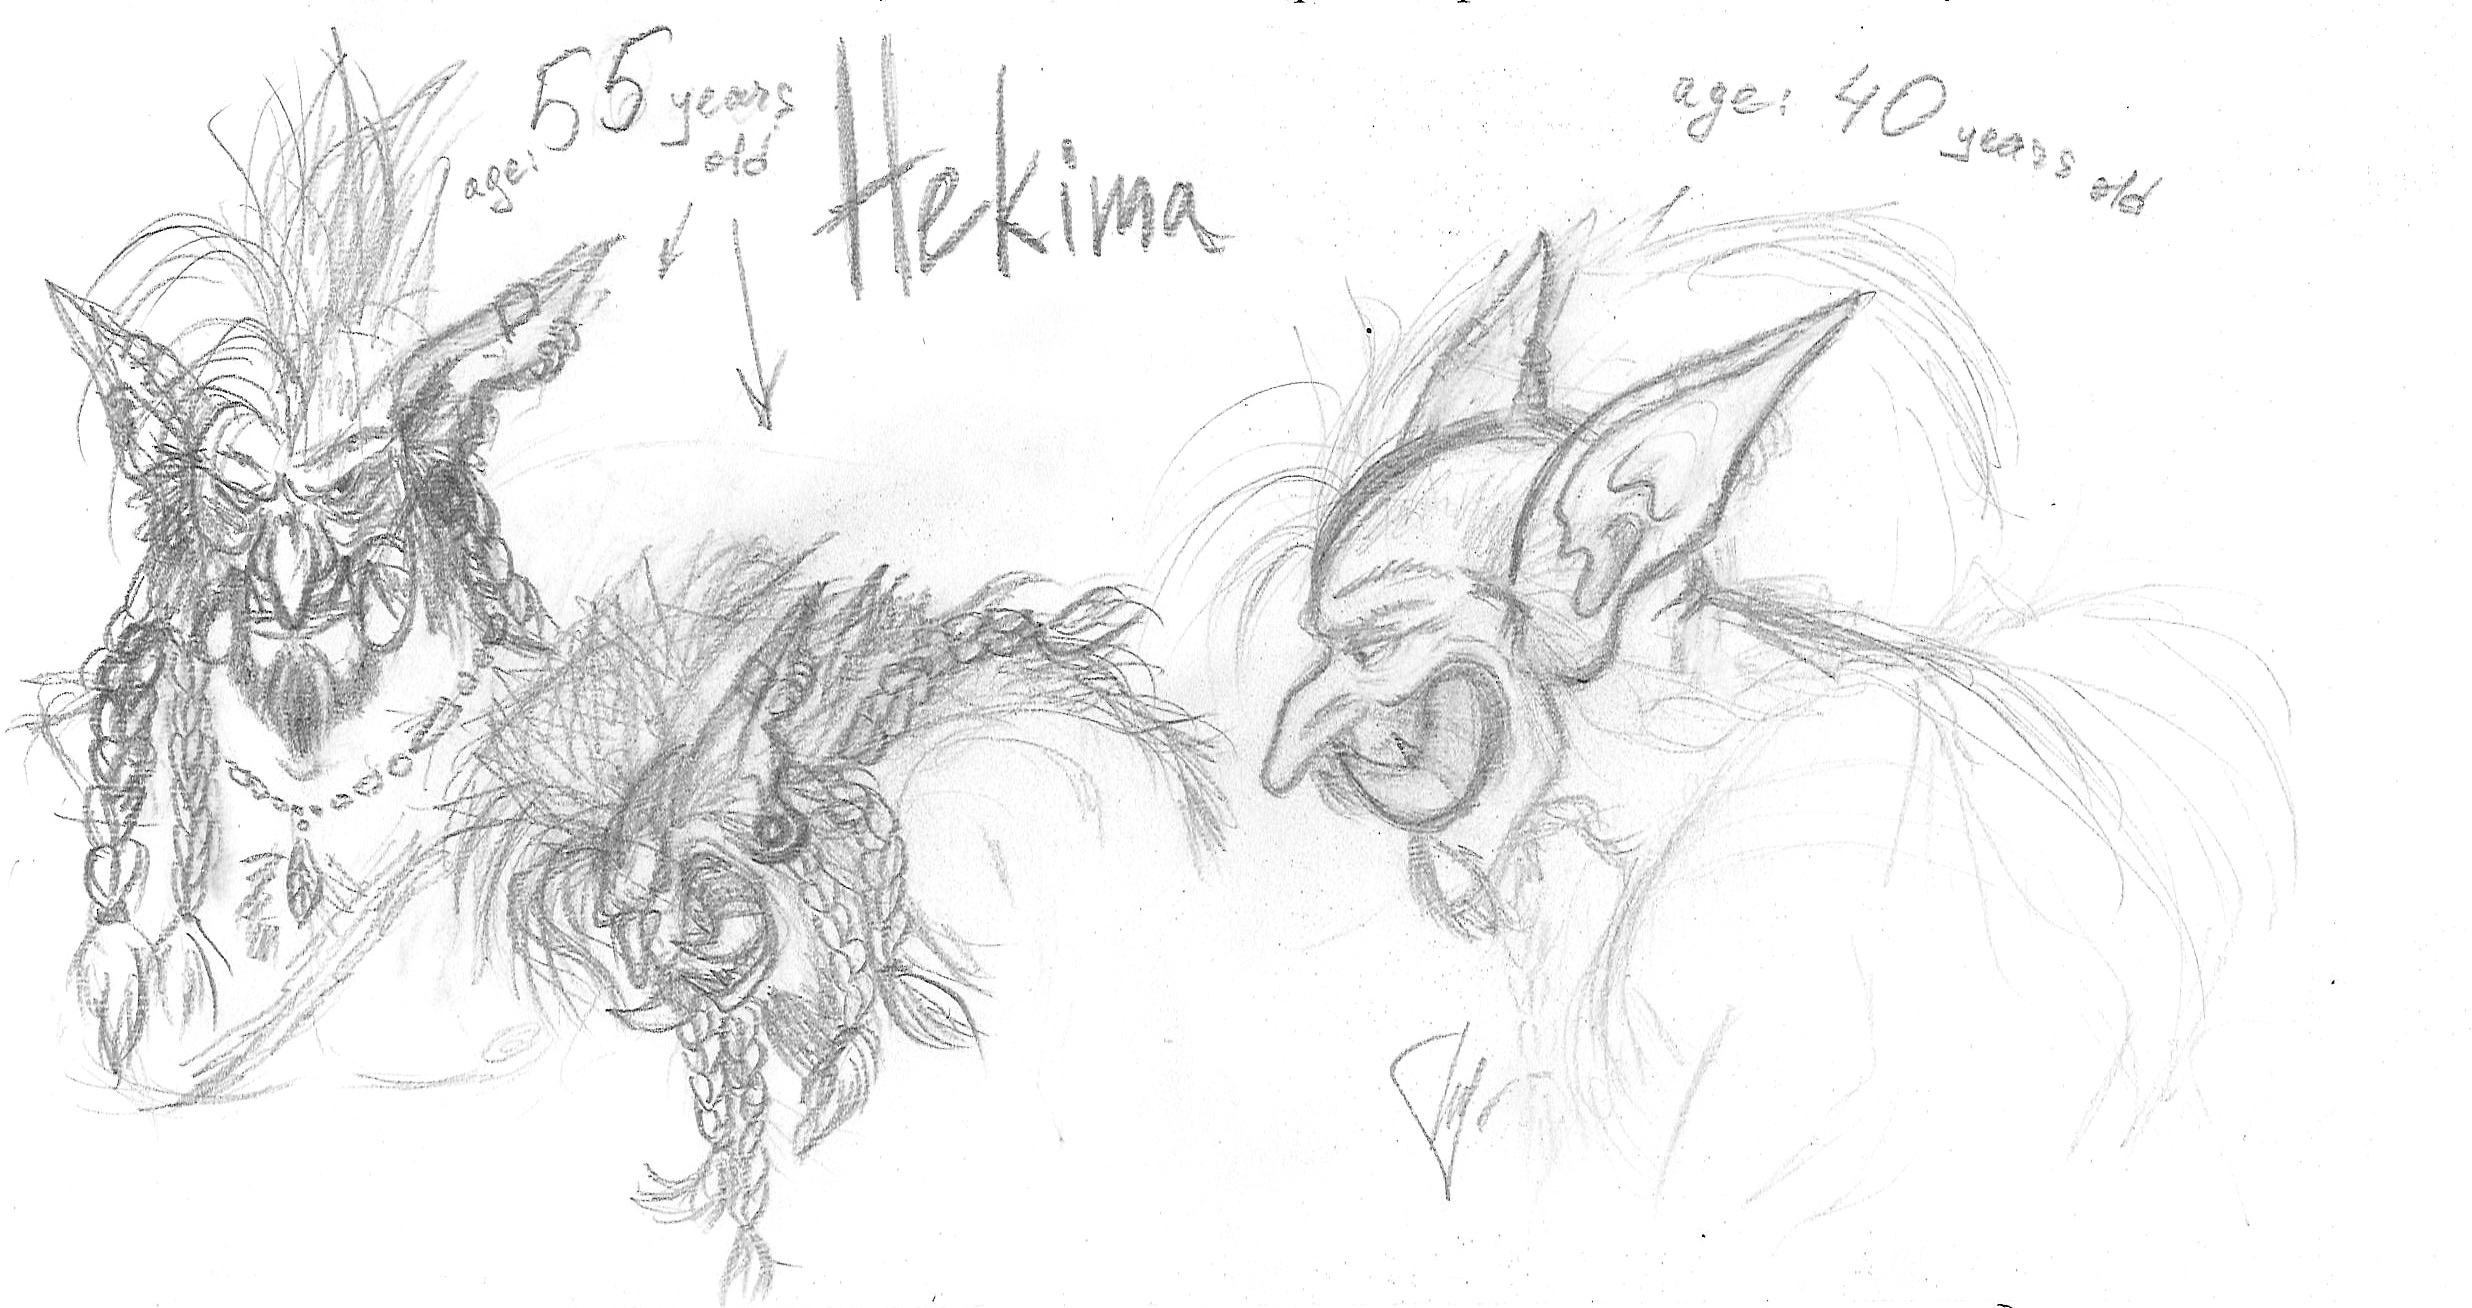 Hekima: sketch of ears and 55 years old by Flive-aka-Nailan